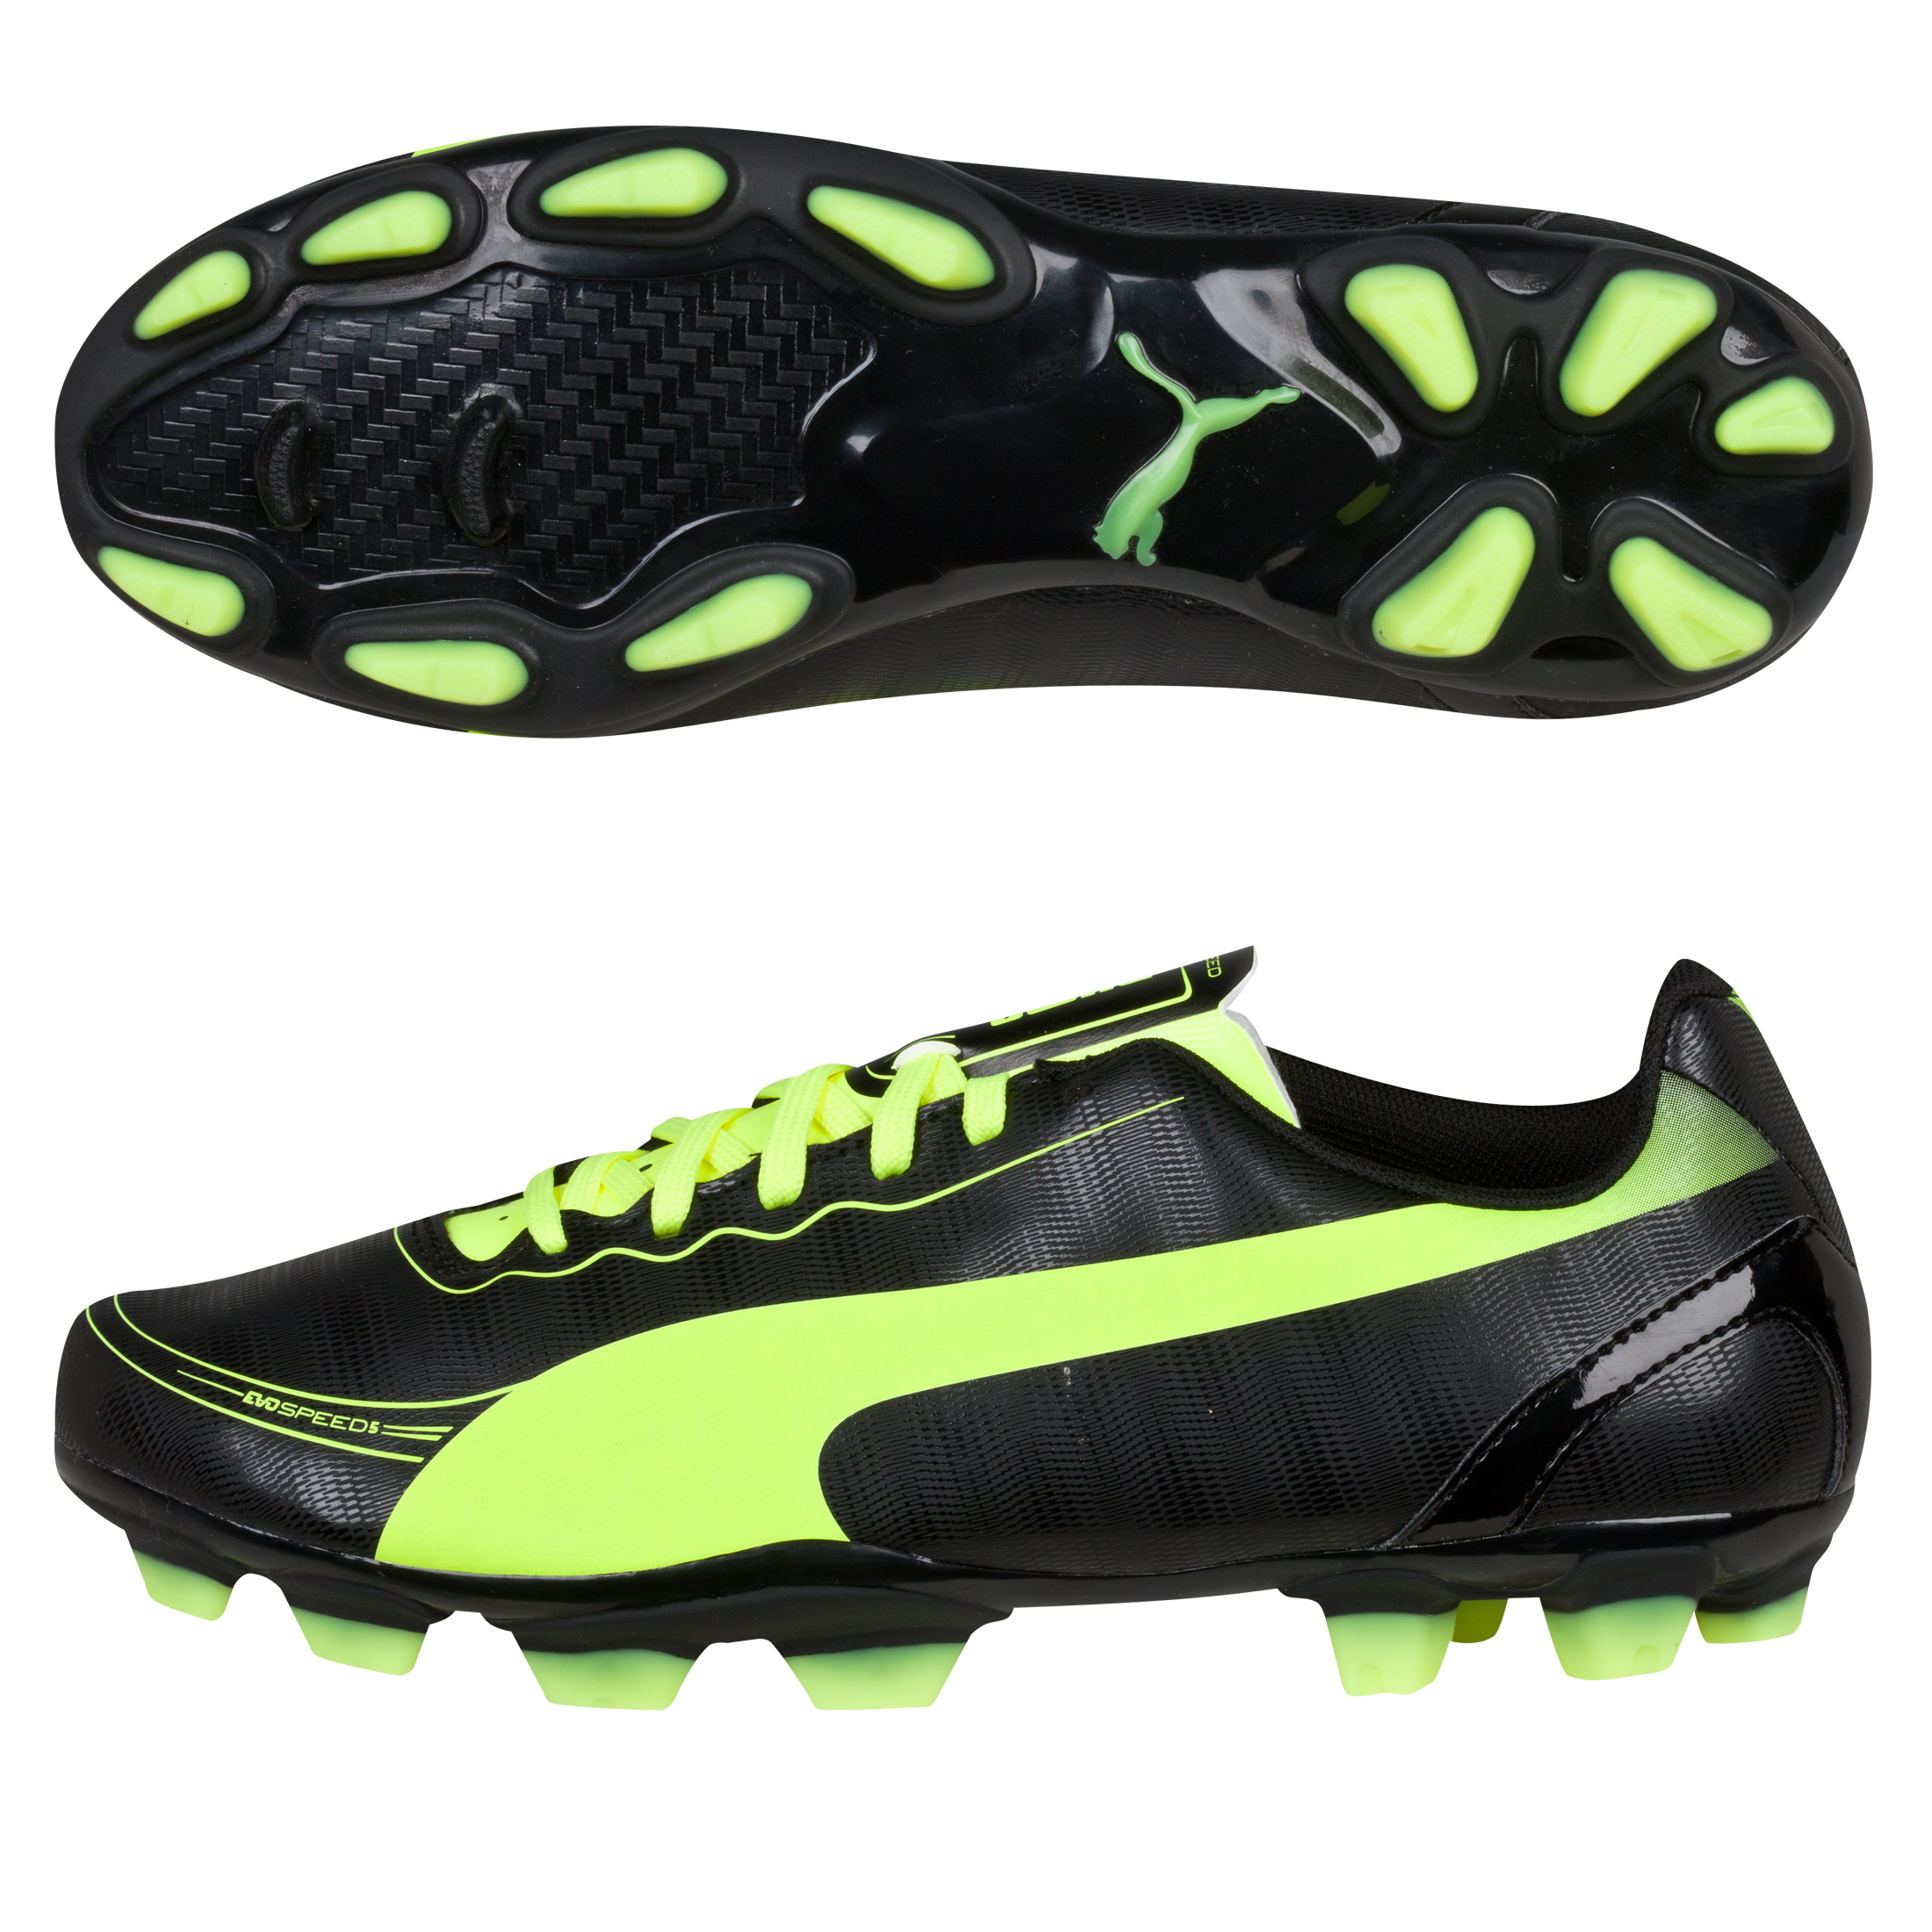 Puma evoSPEED 5.2 Firm Ground Football Boots - Kids Black